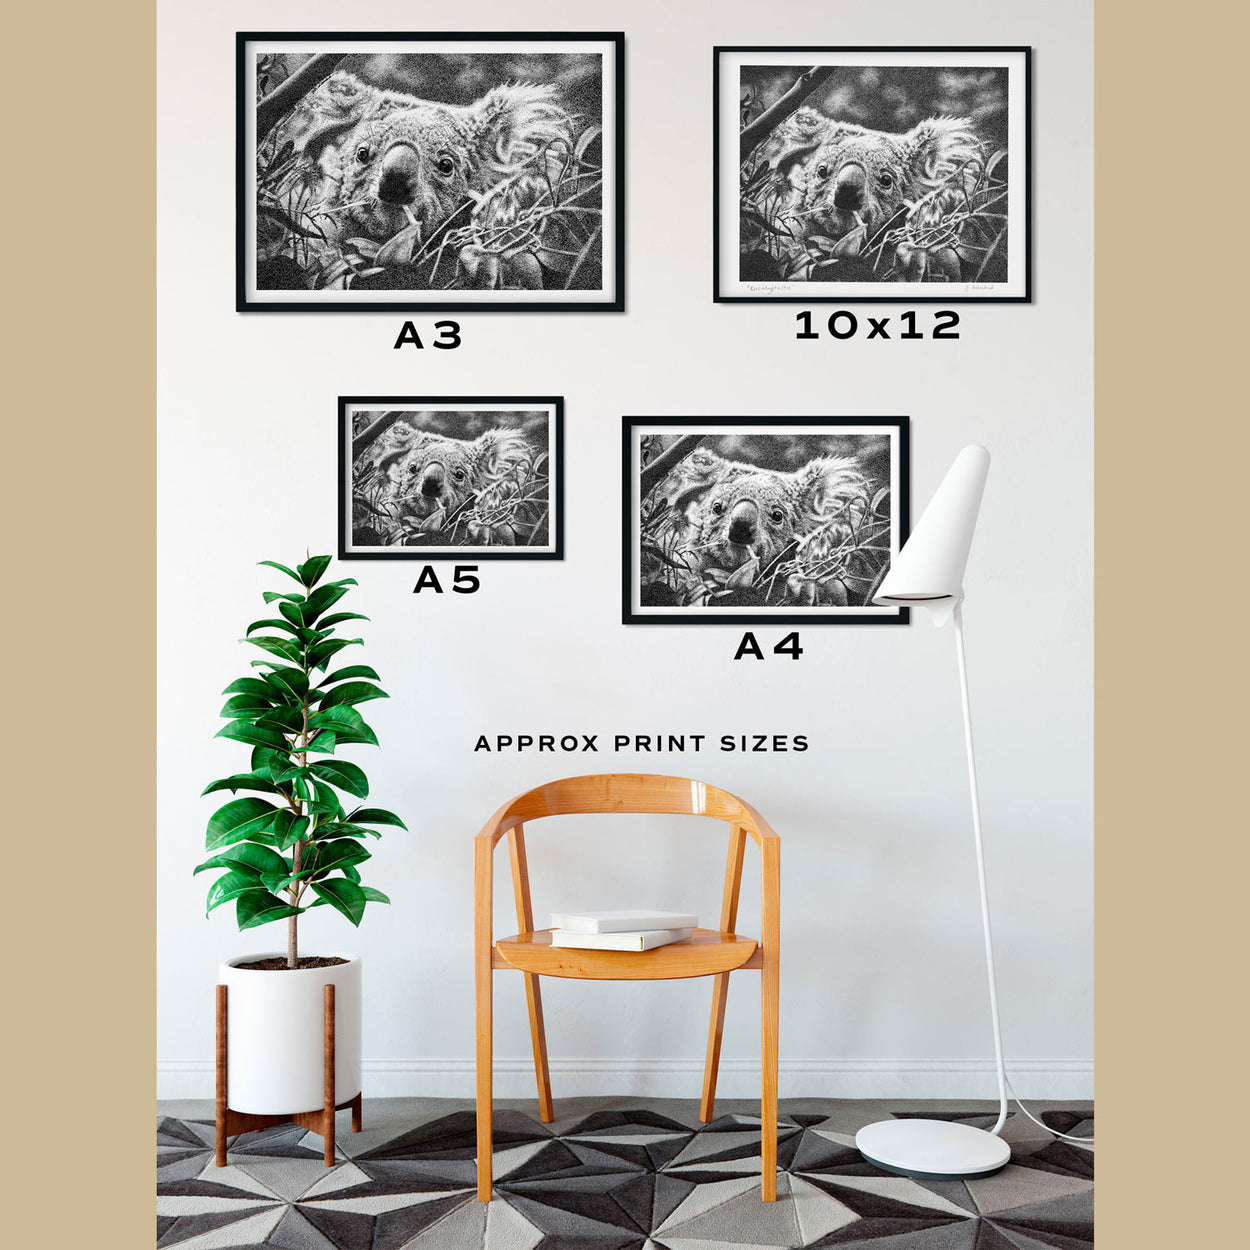 Koala Wall Art Size Comparison - The Thriving Wild